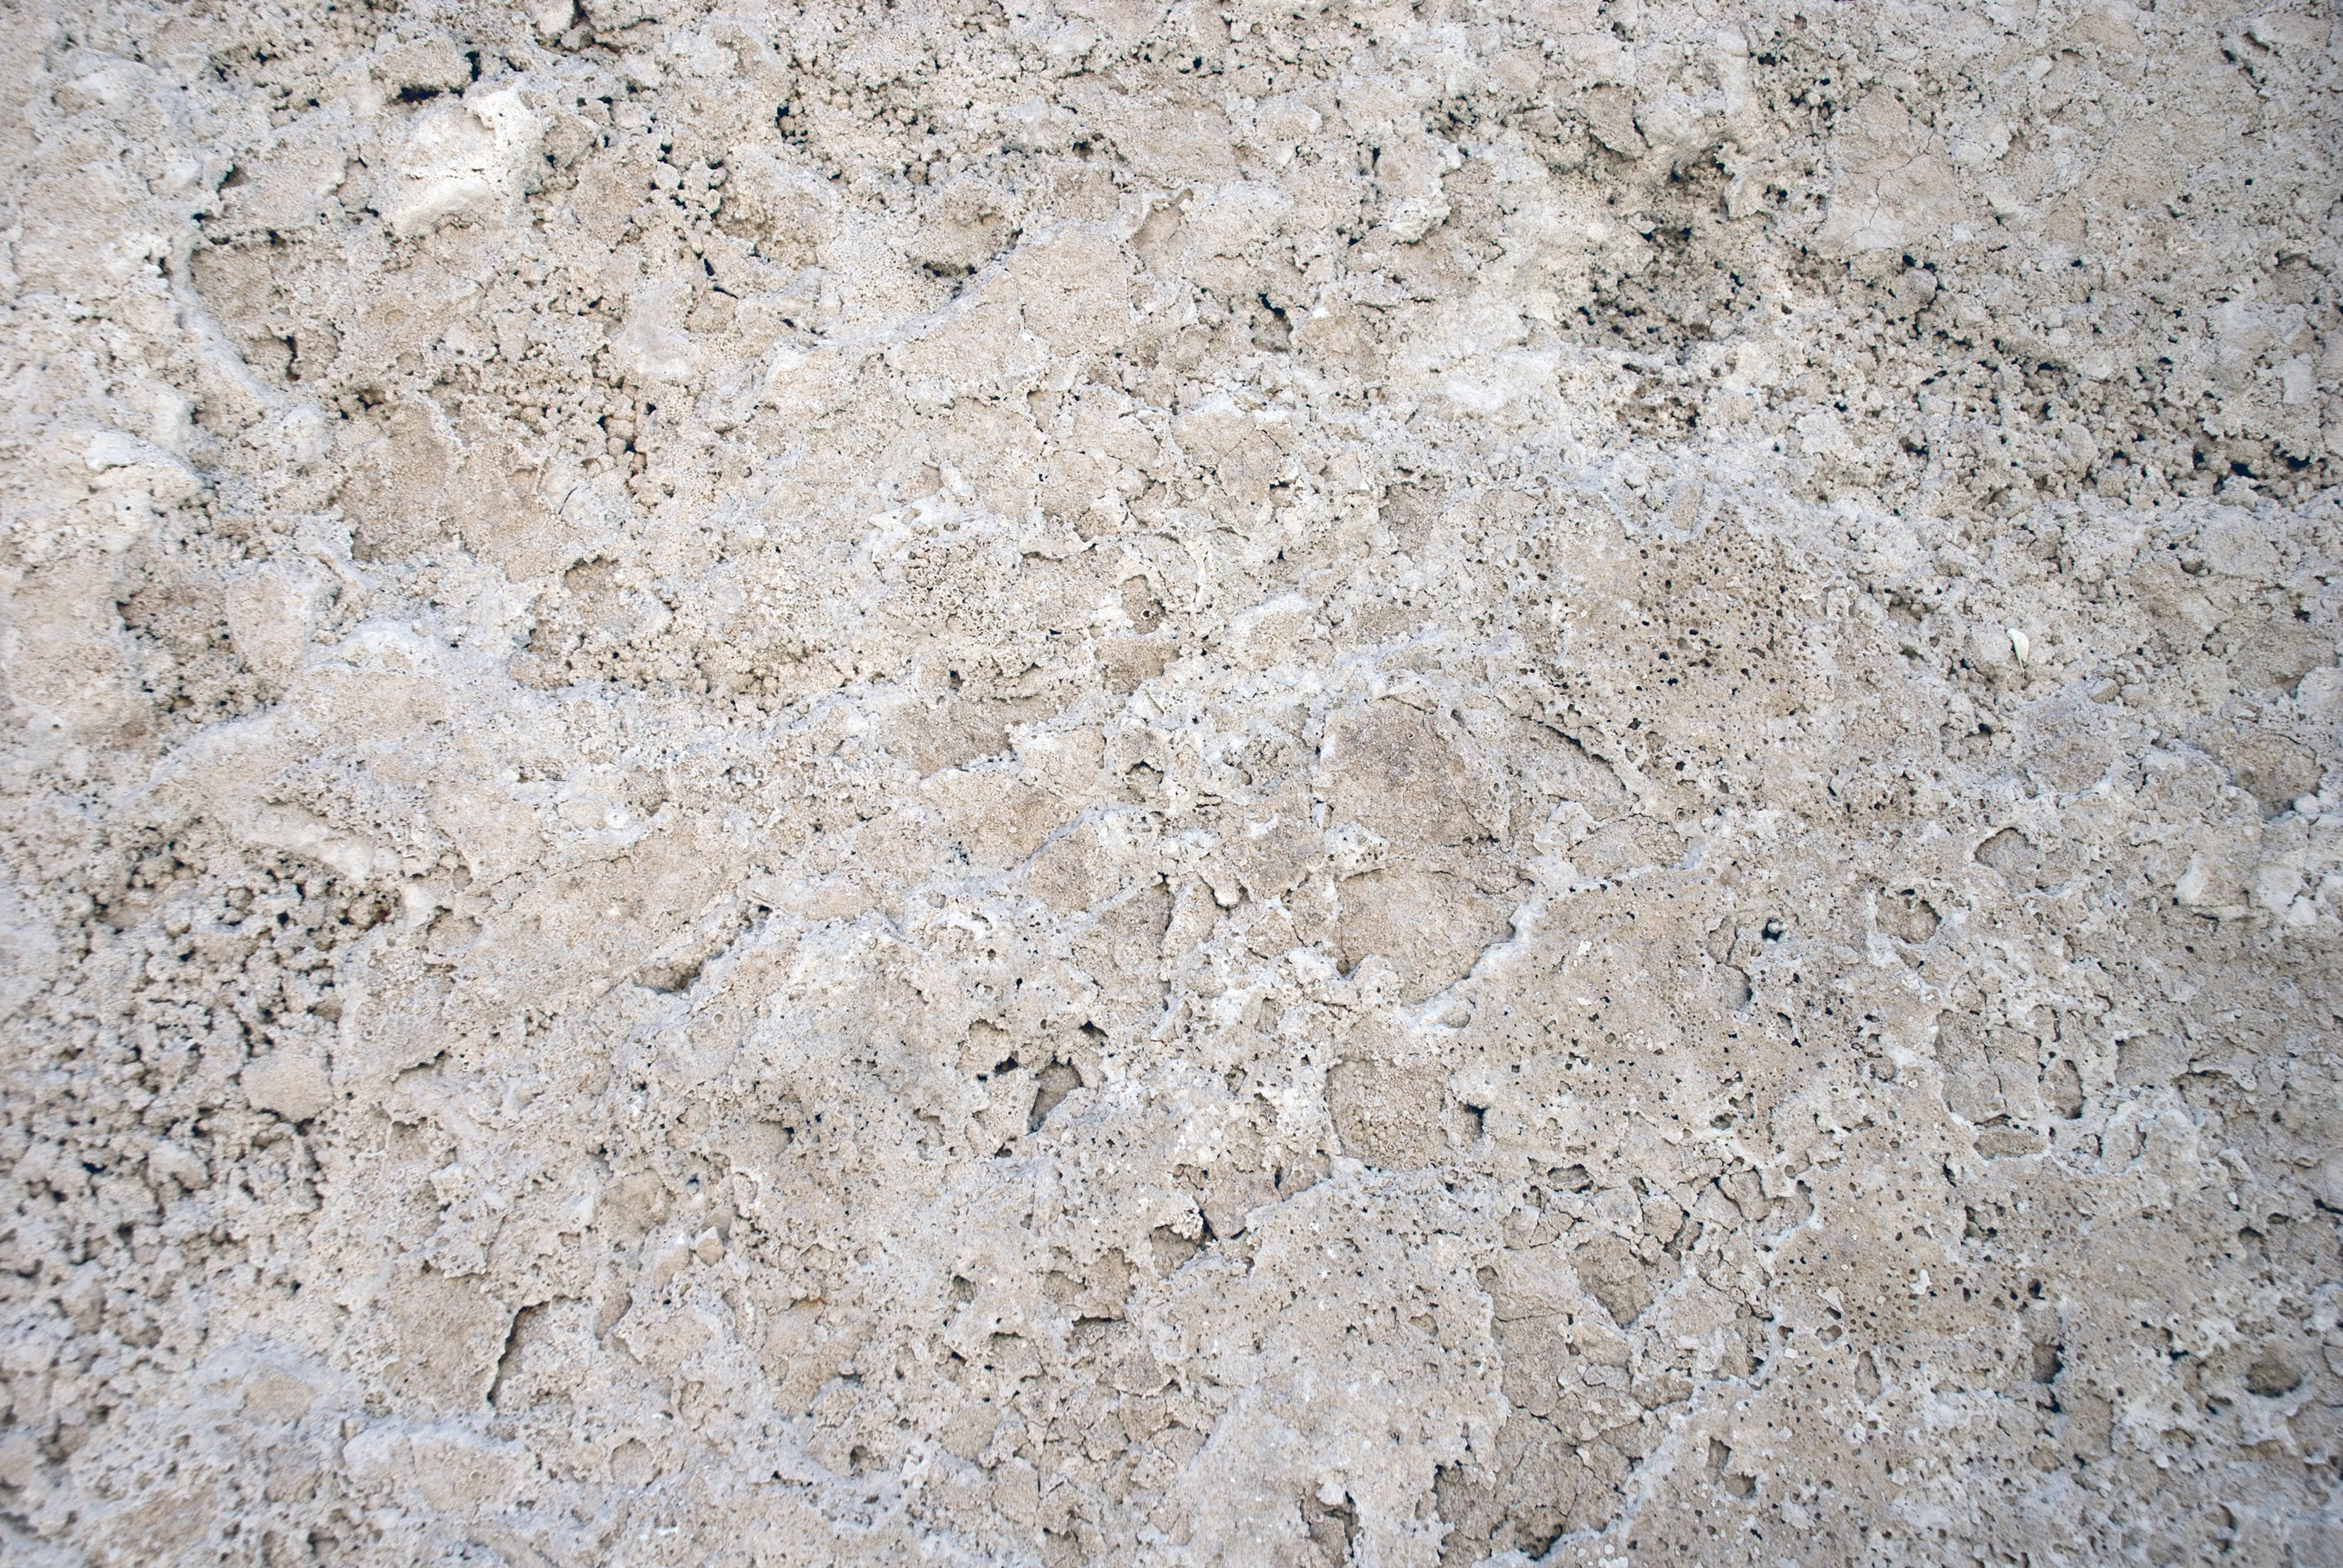 gray stone, texture, background, gray stone texture background